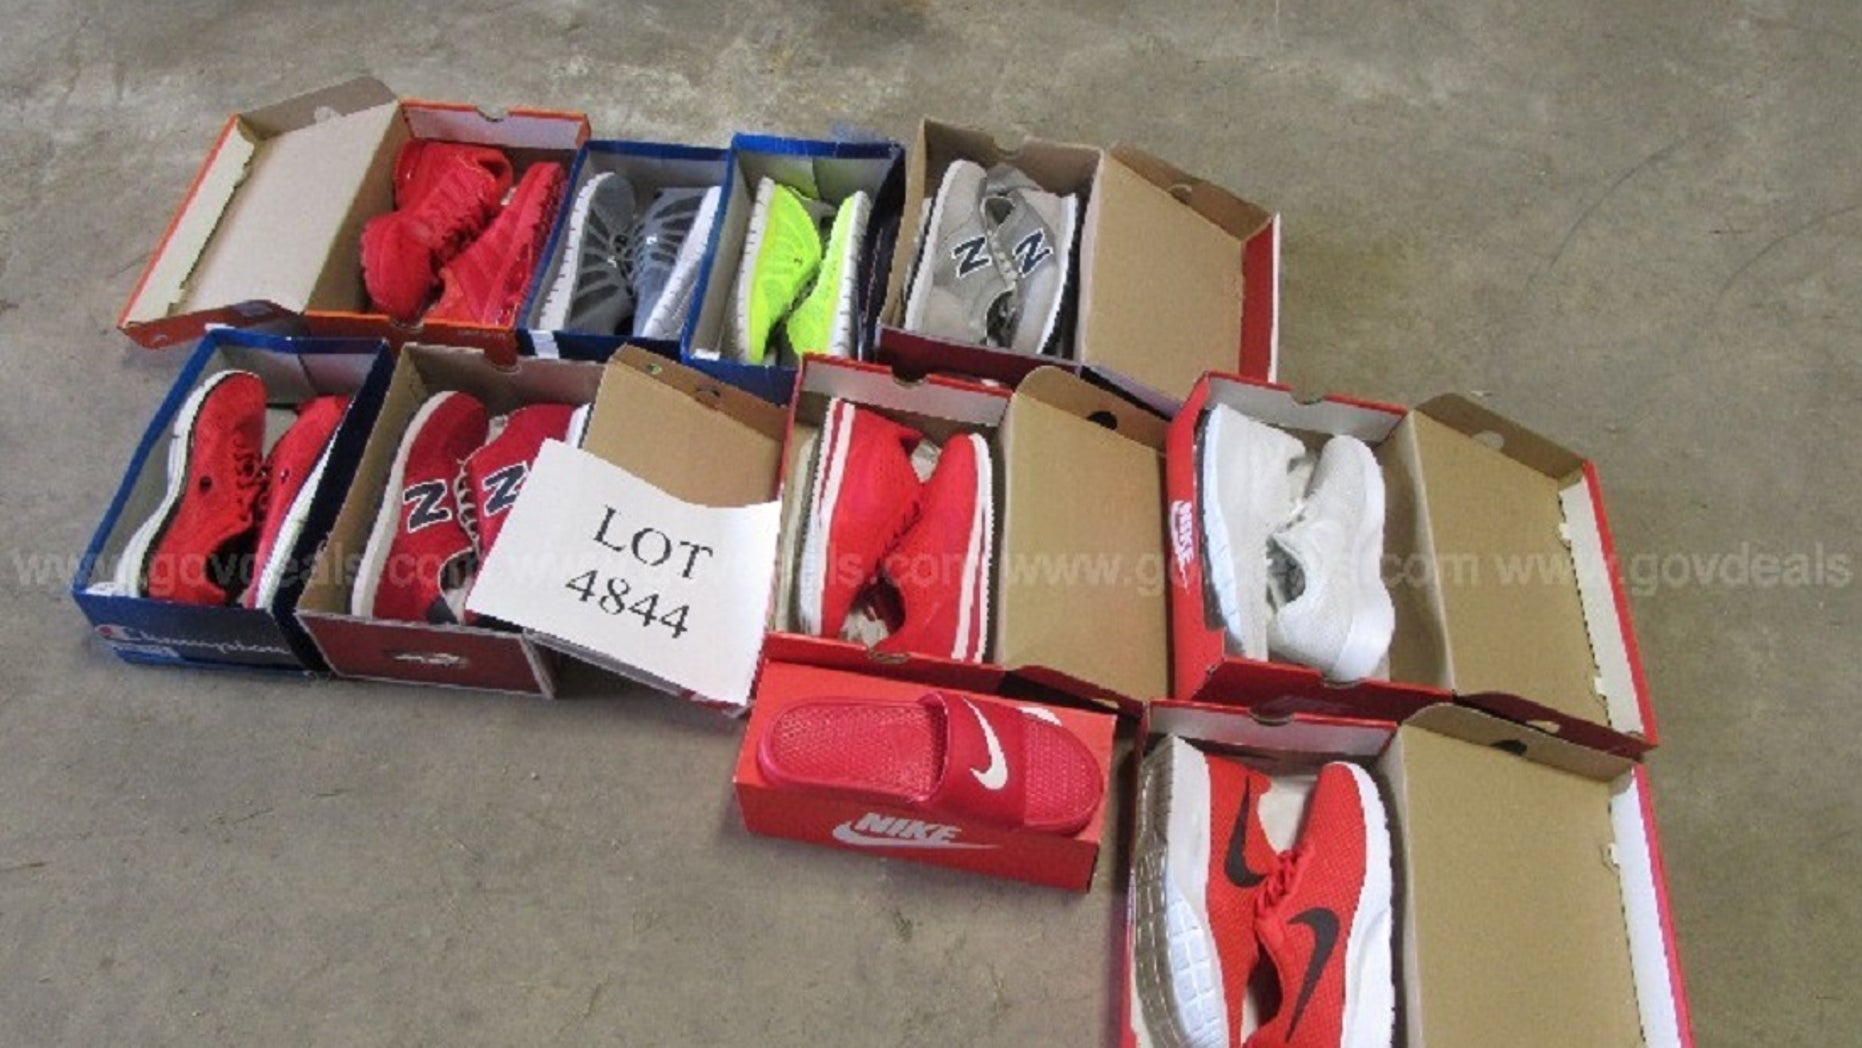 A convicted drug dealer's sneakers are being auctioned off by a central Ohio county.